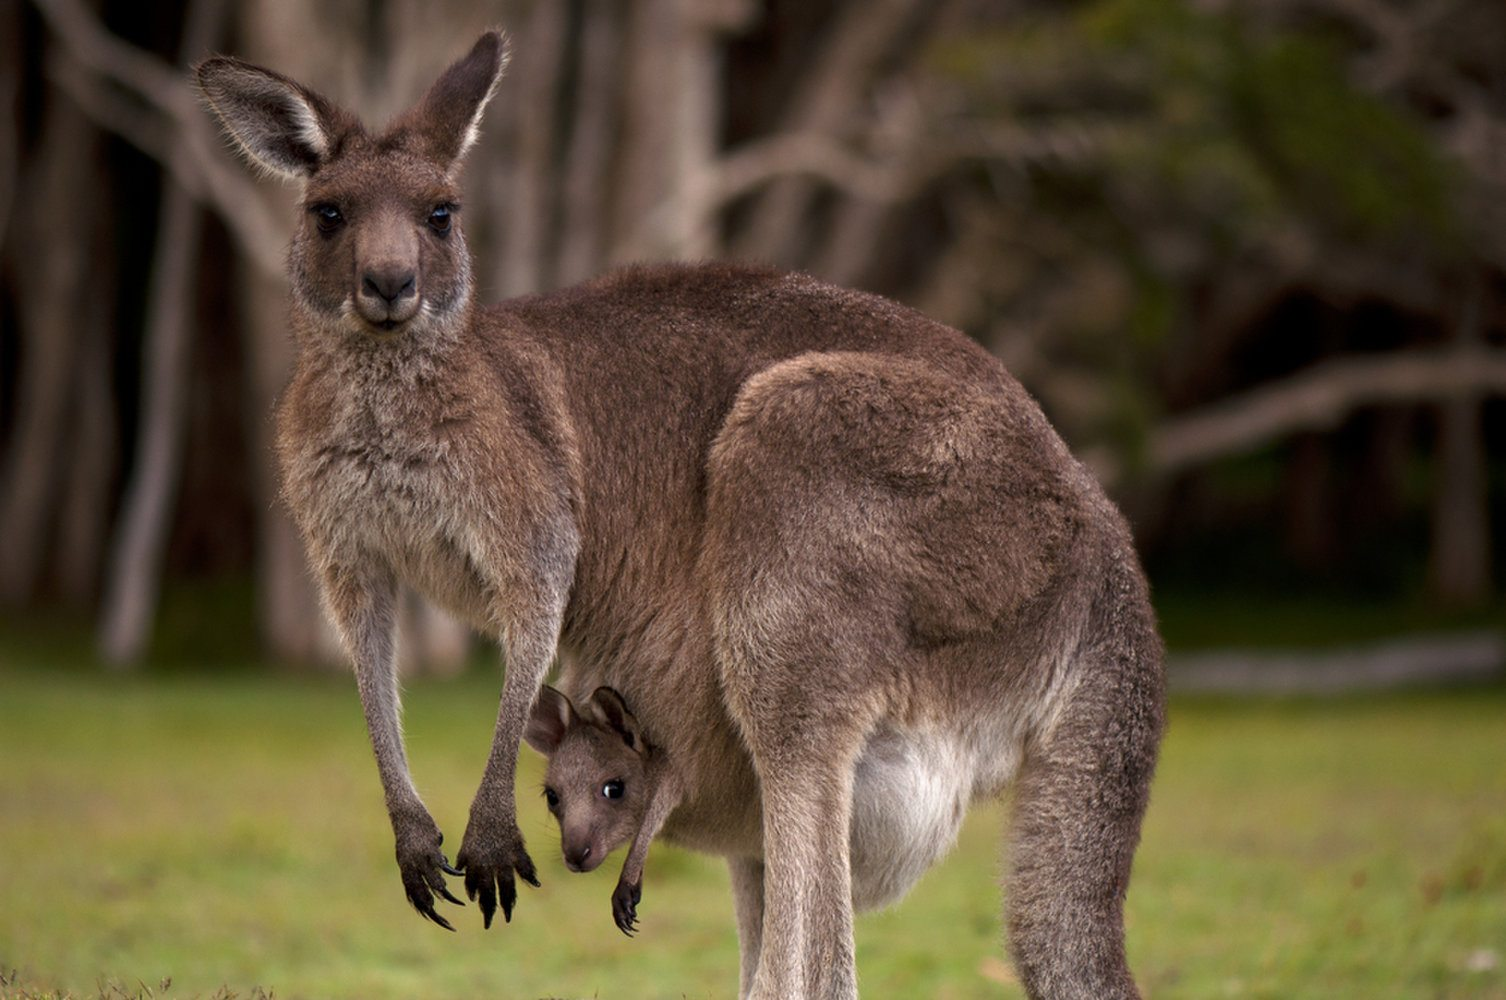 Kangaroo - Facts About